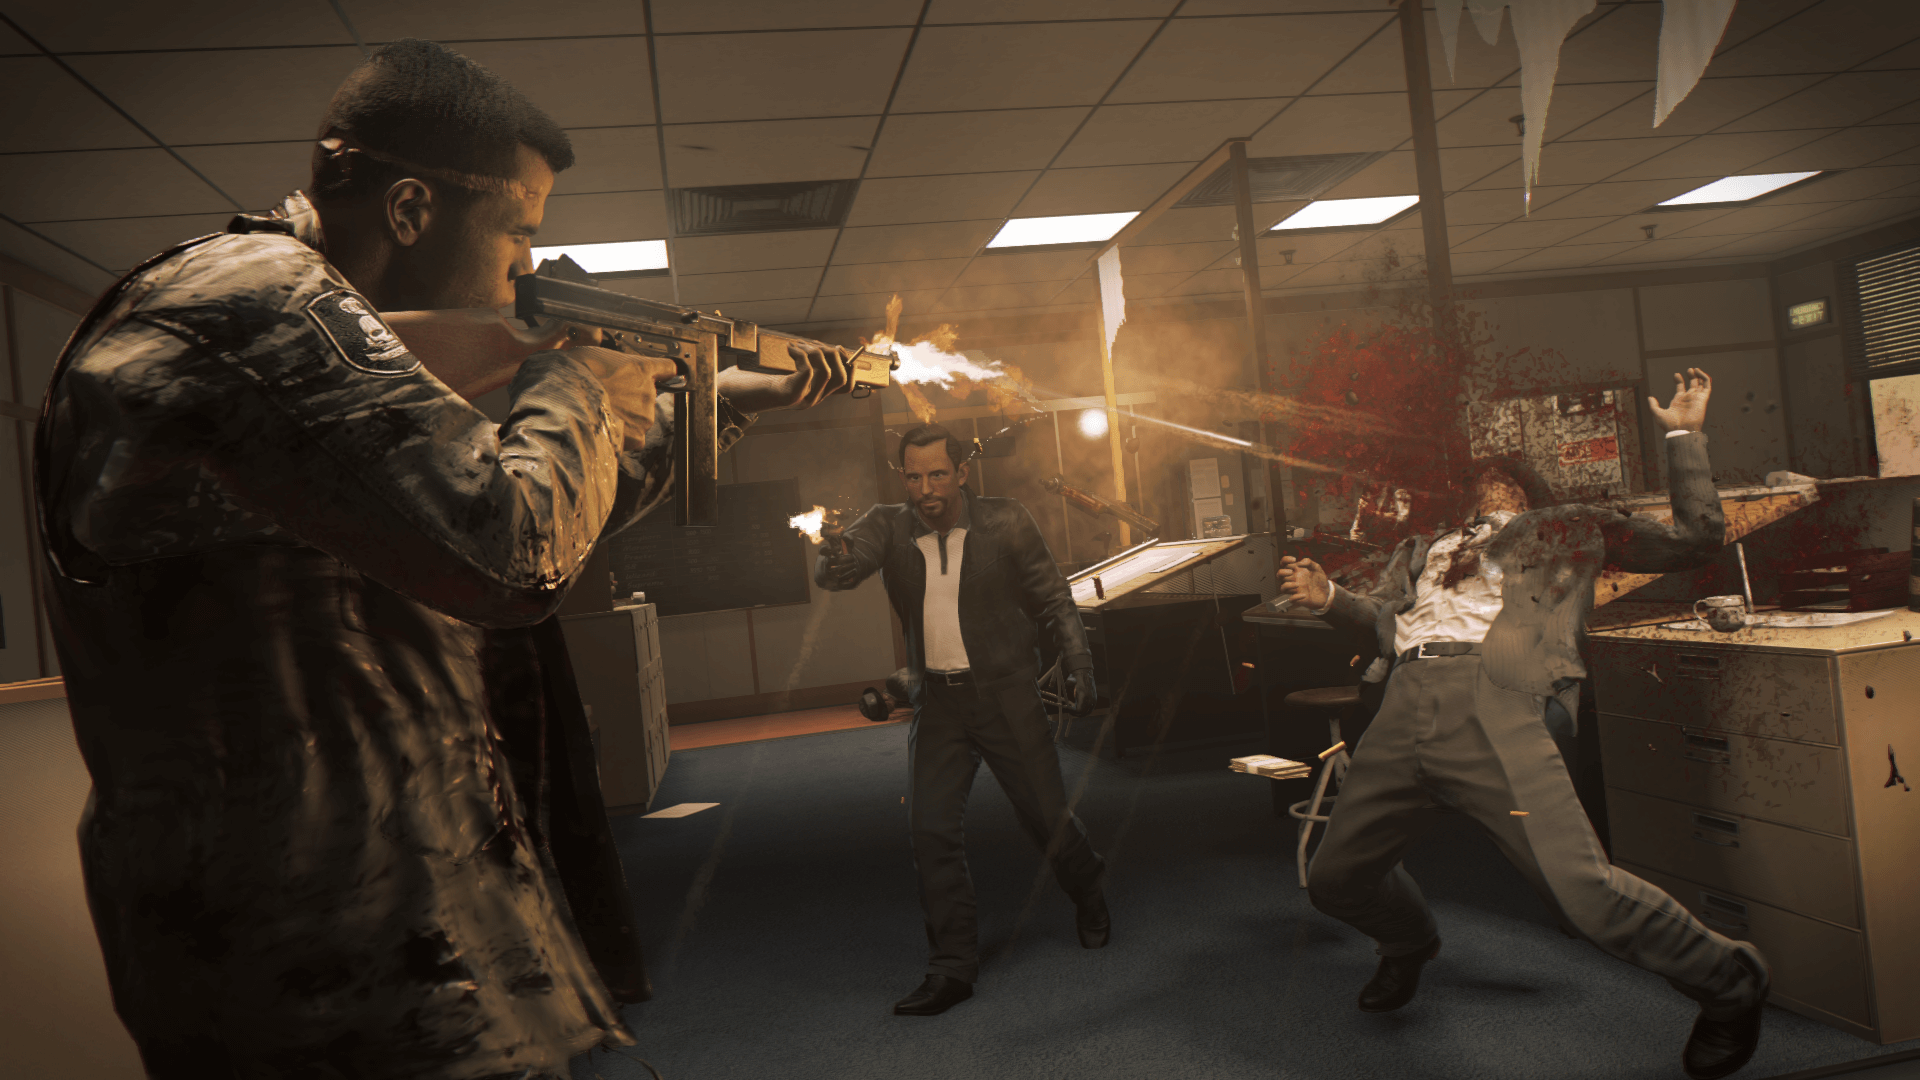 3050342-mafia3_officetakedown_06